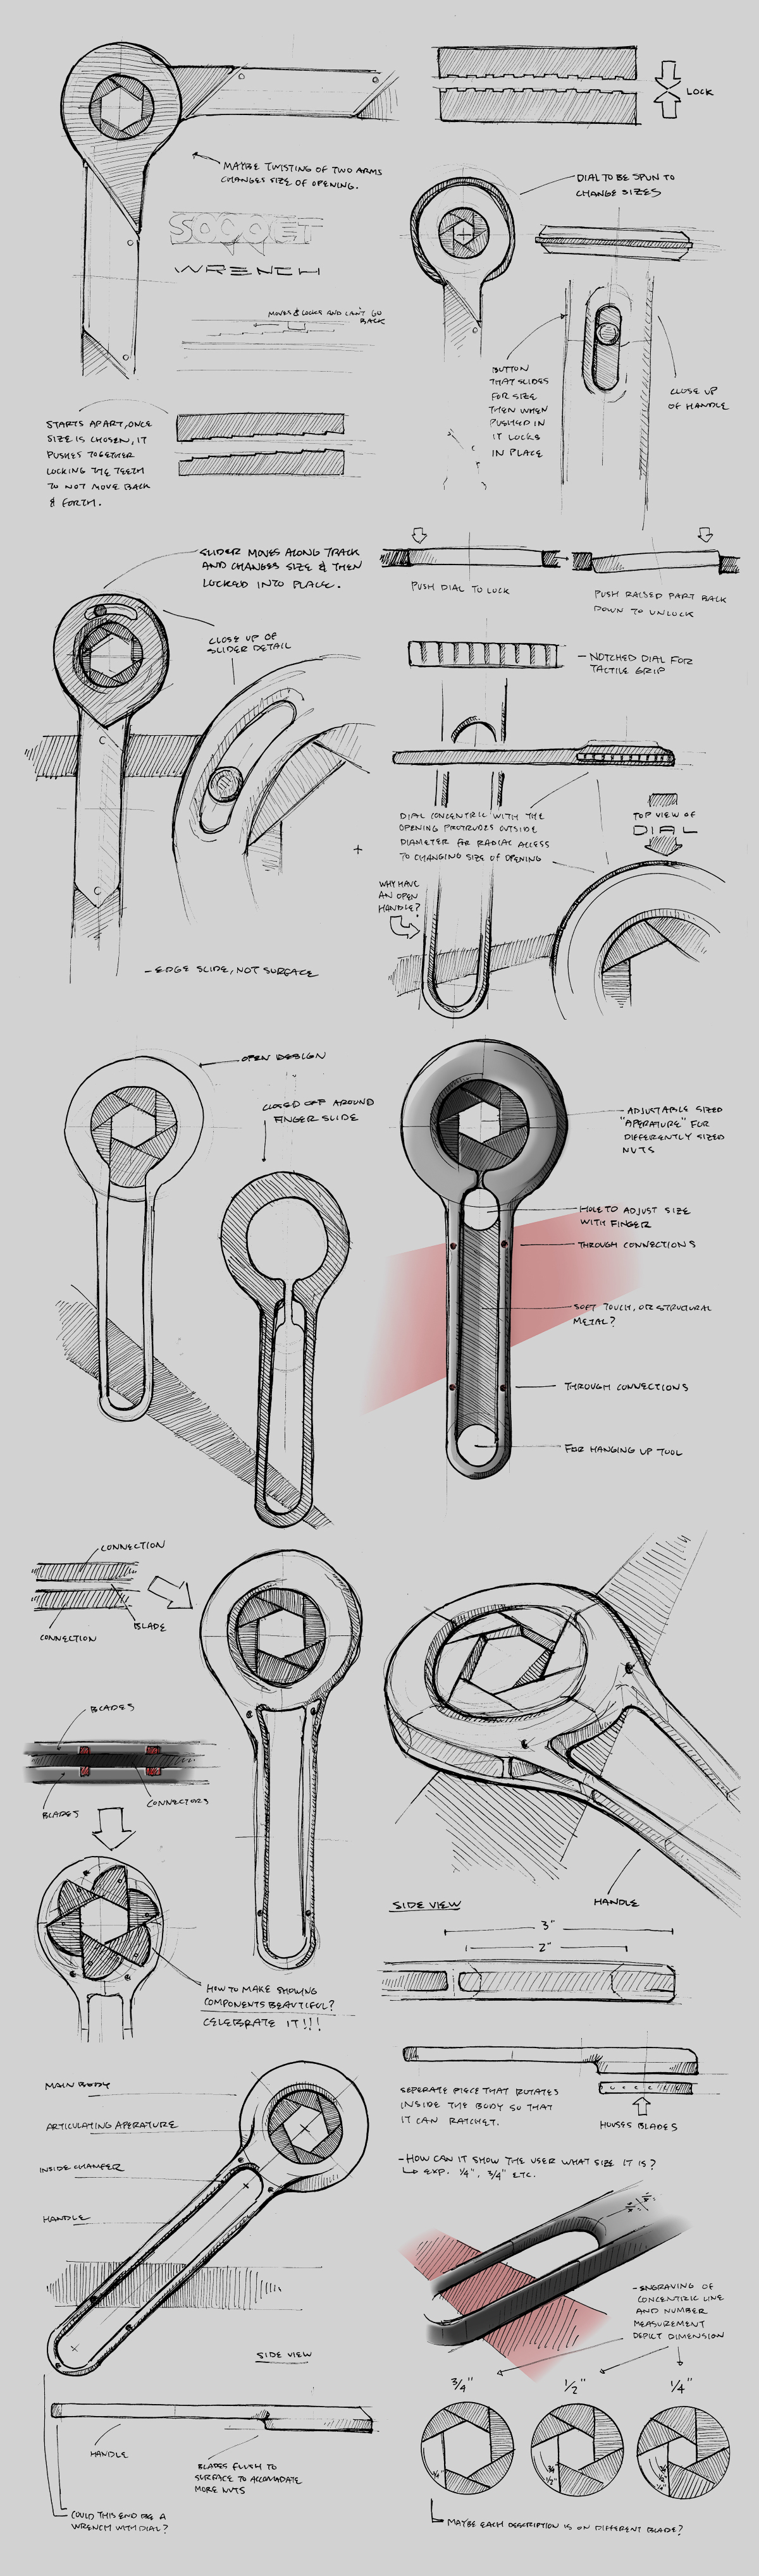 aperture wrench design specs